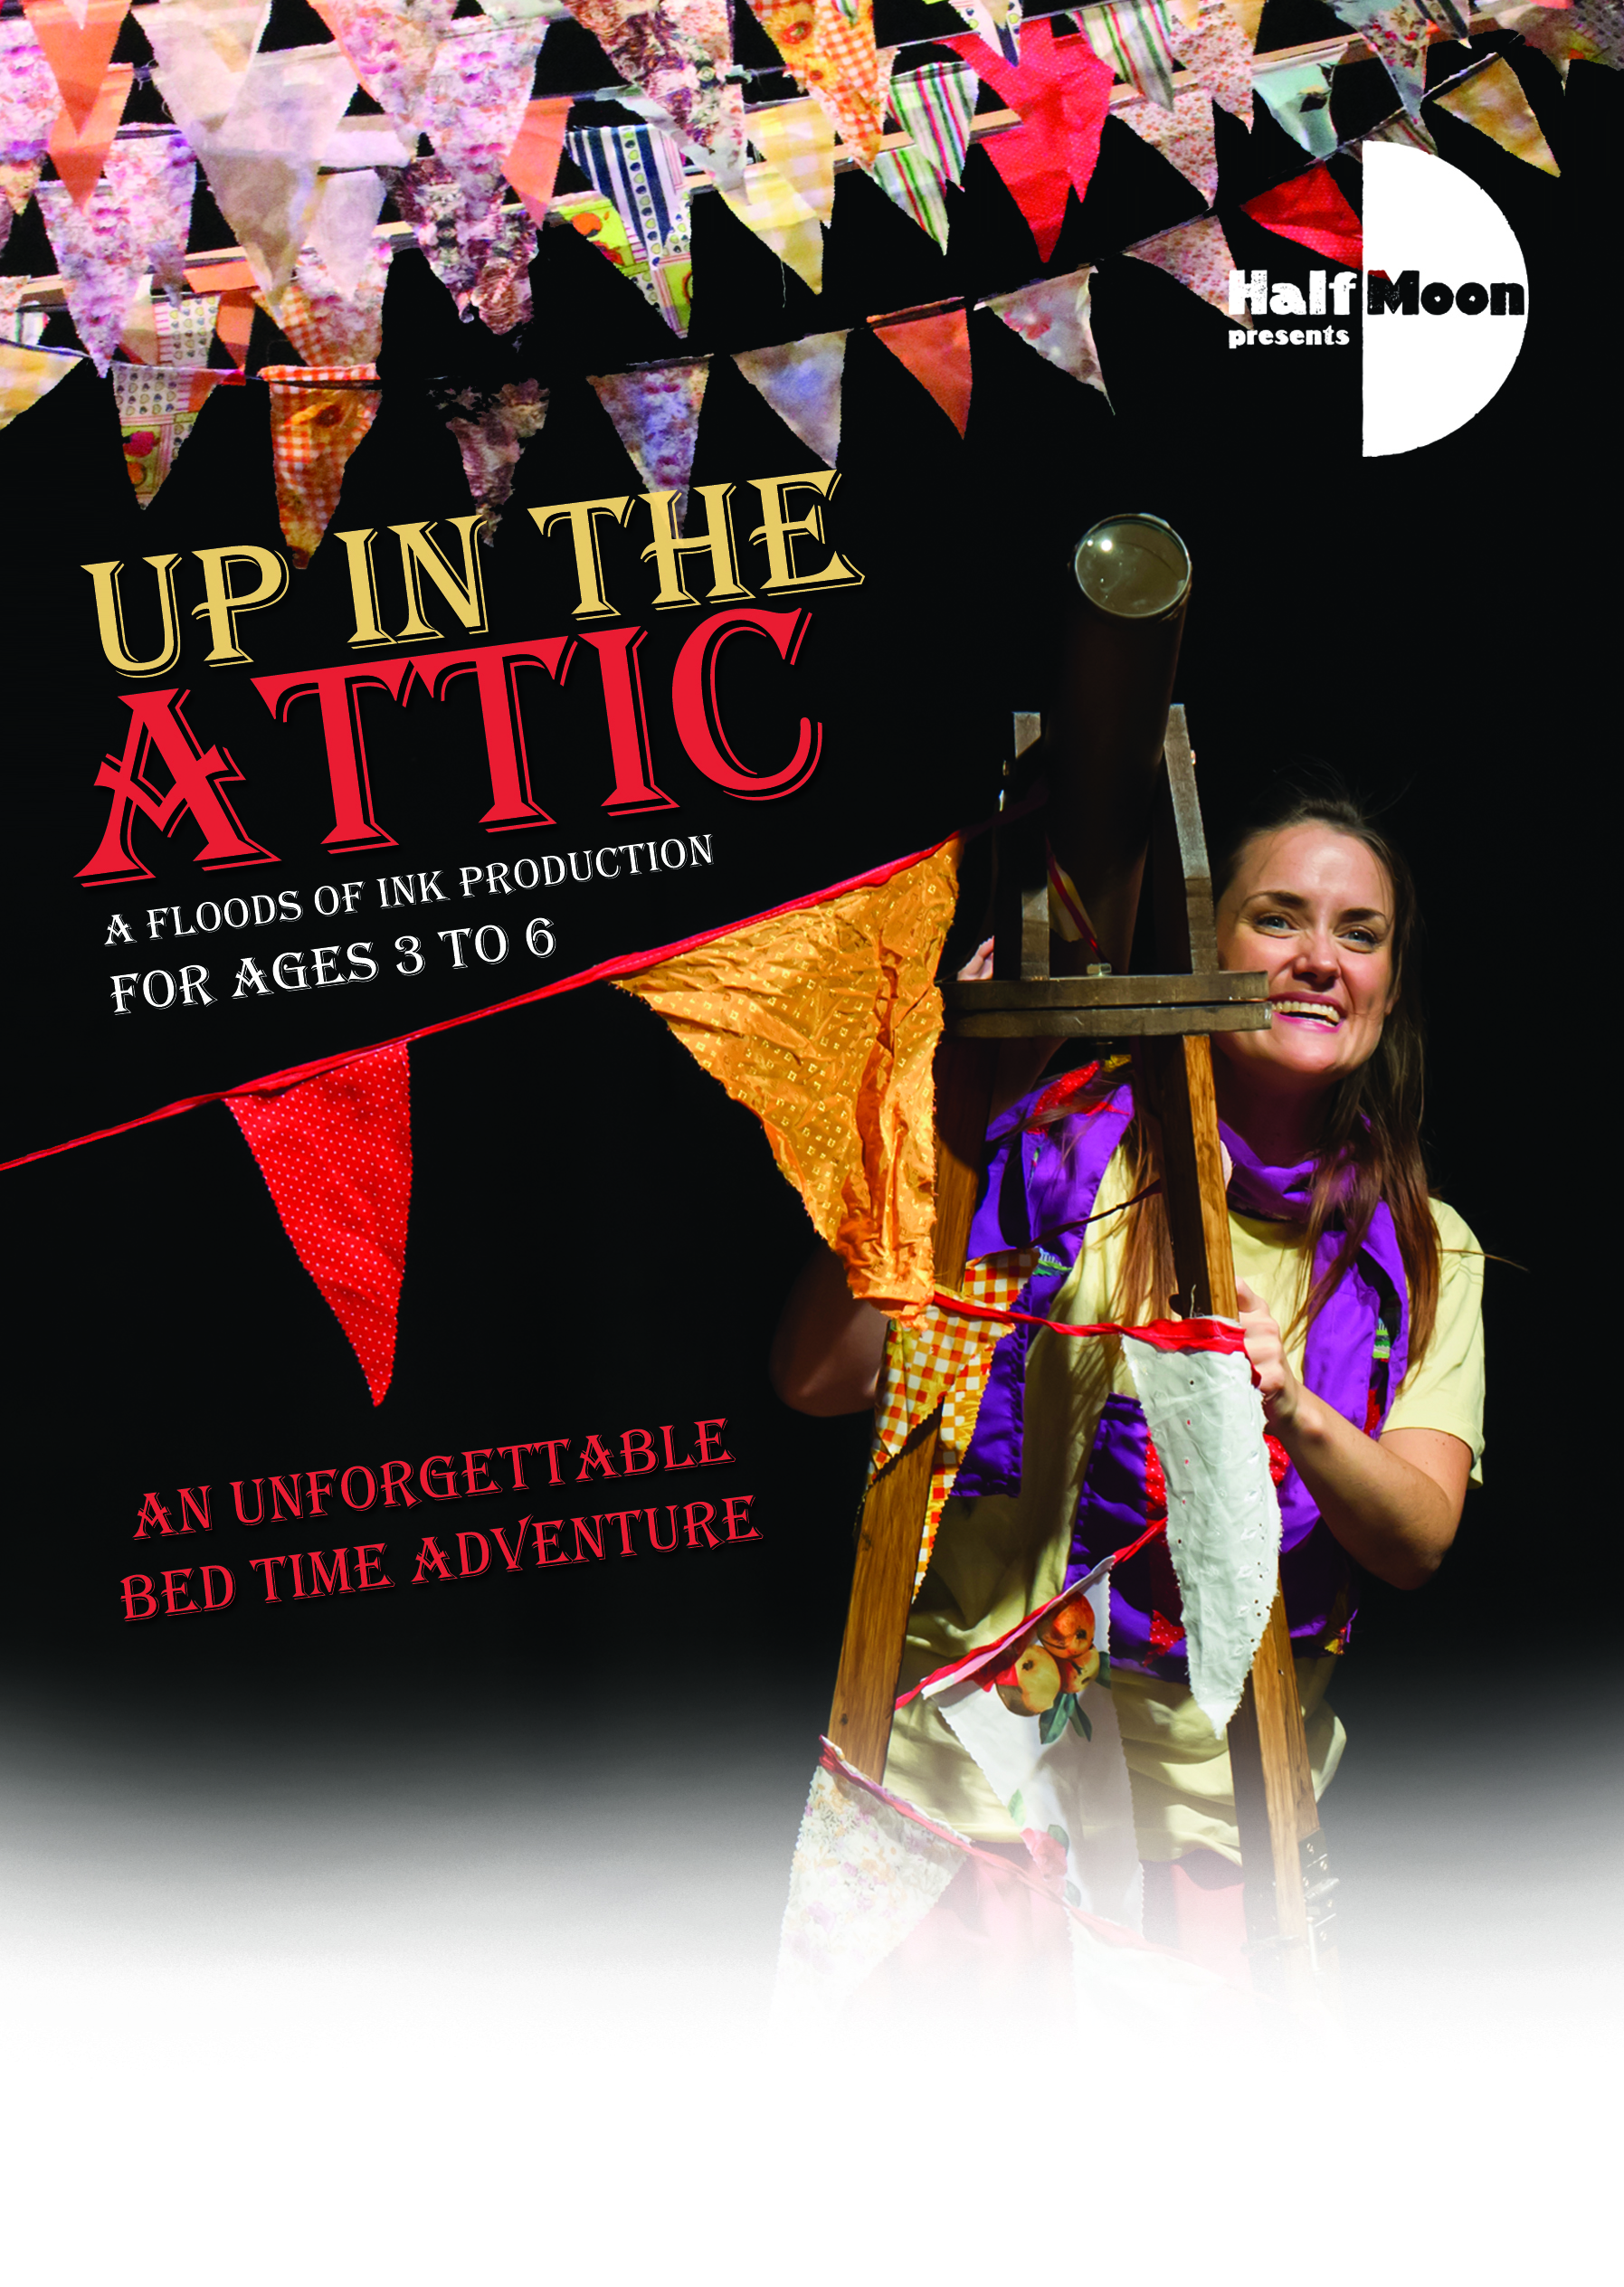 Up in the Attic - leaflet front - 2015